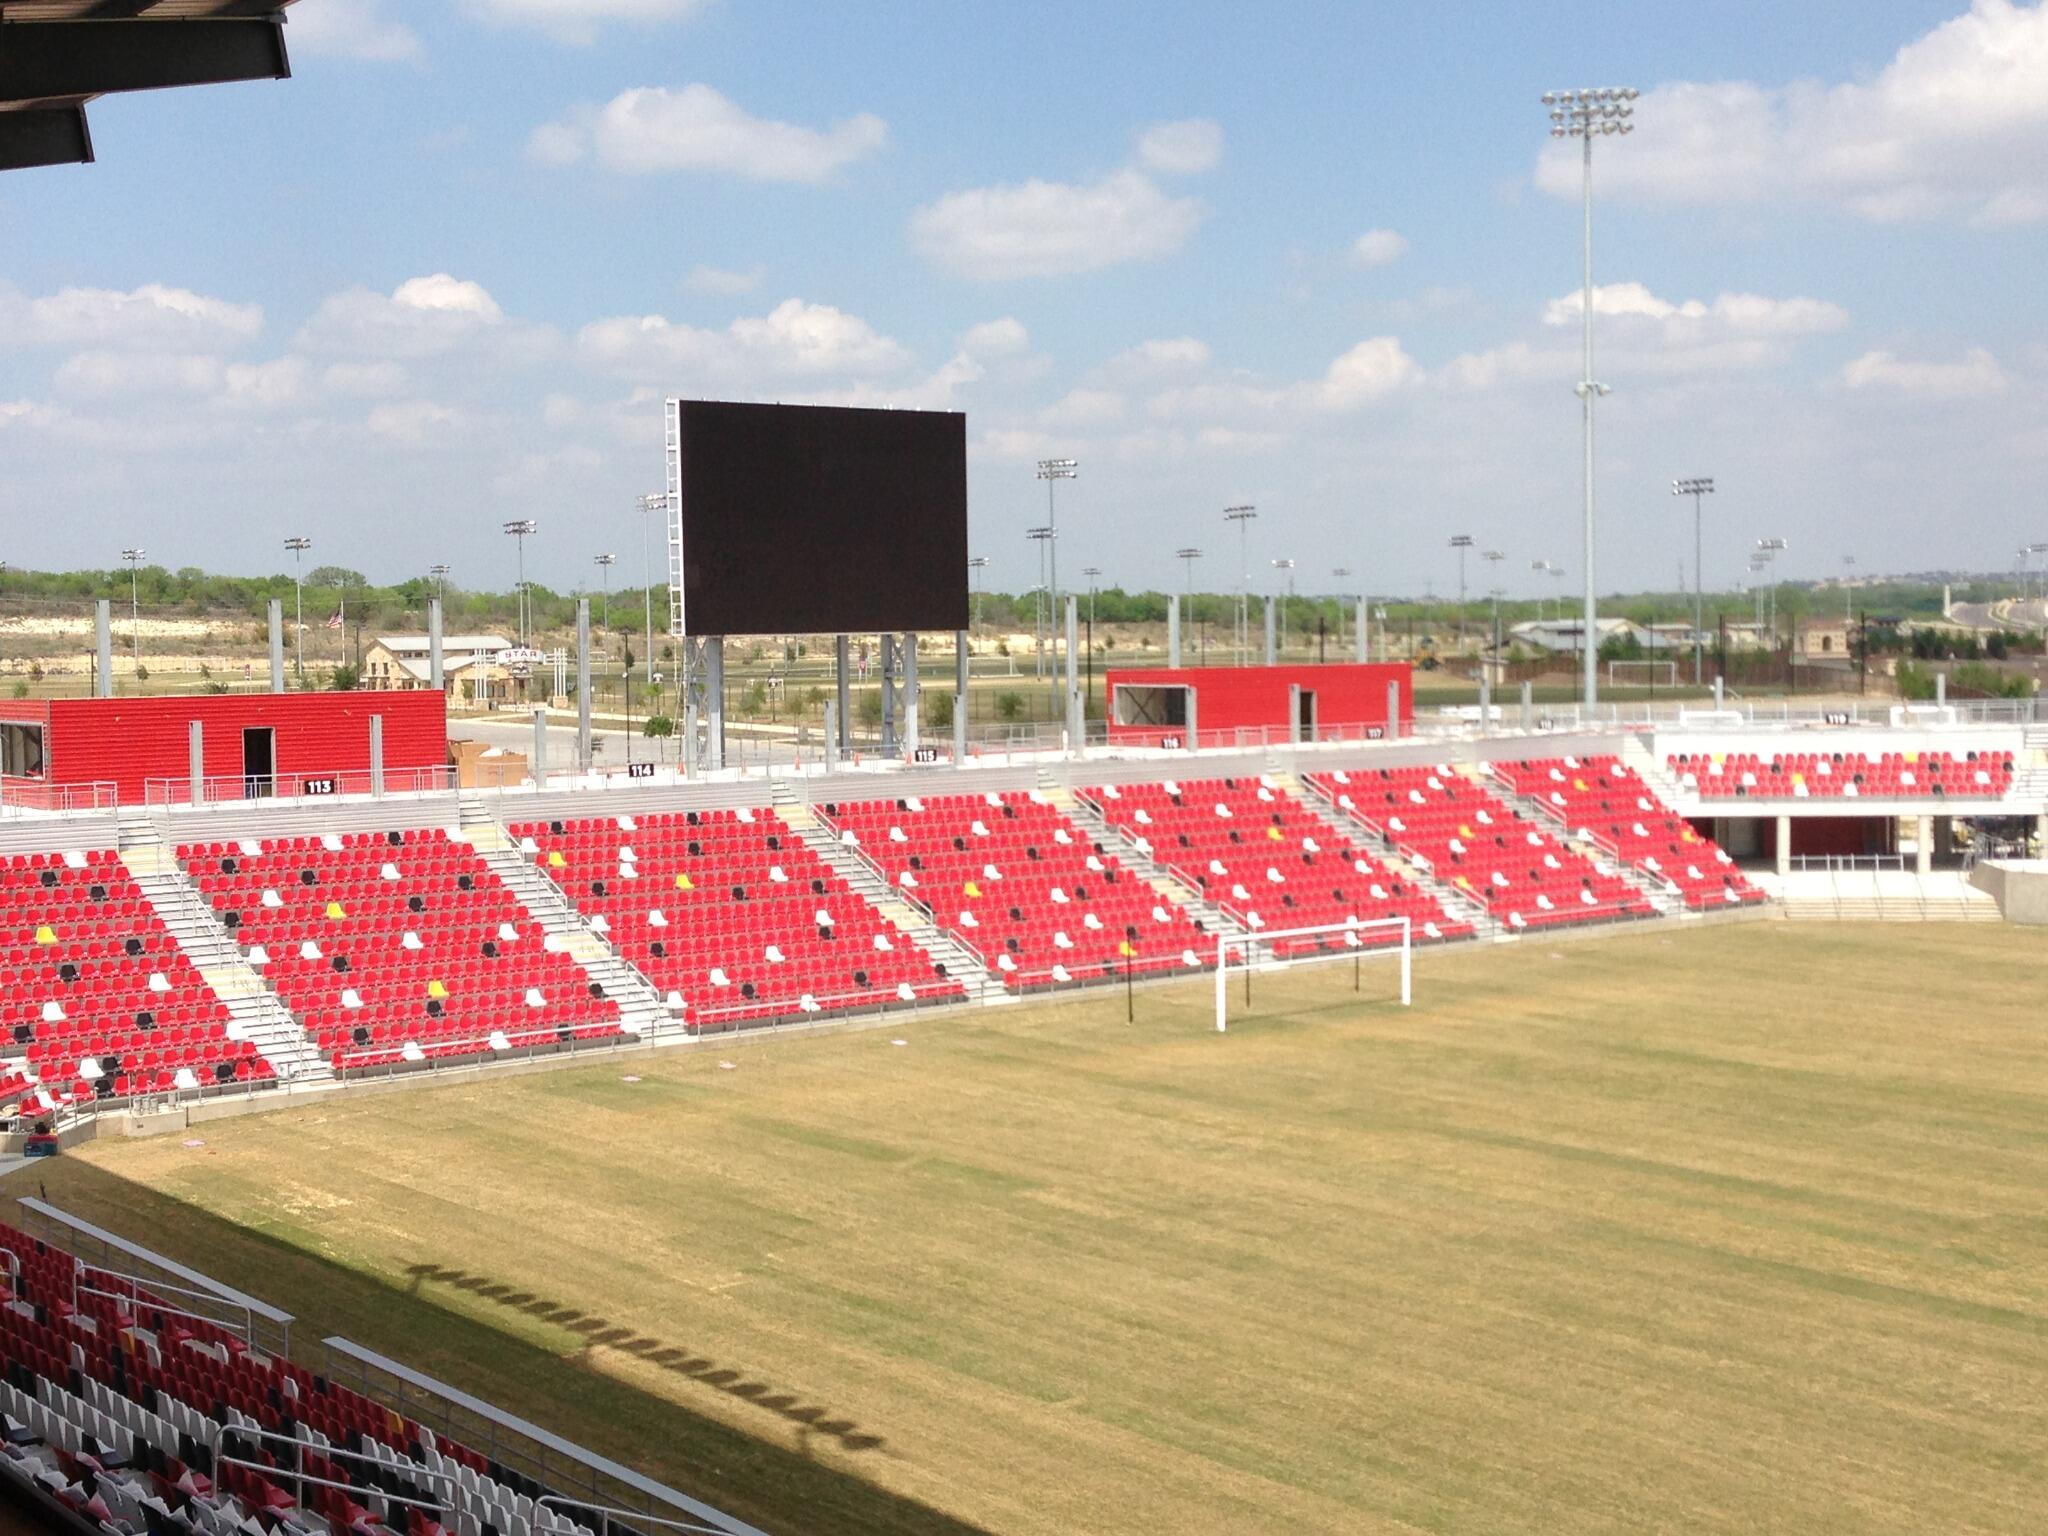 Twitter / SAScorpions: The new video board and goal ...